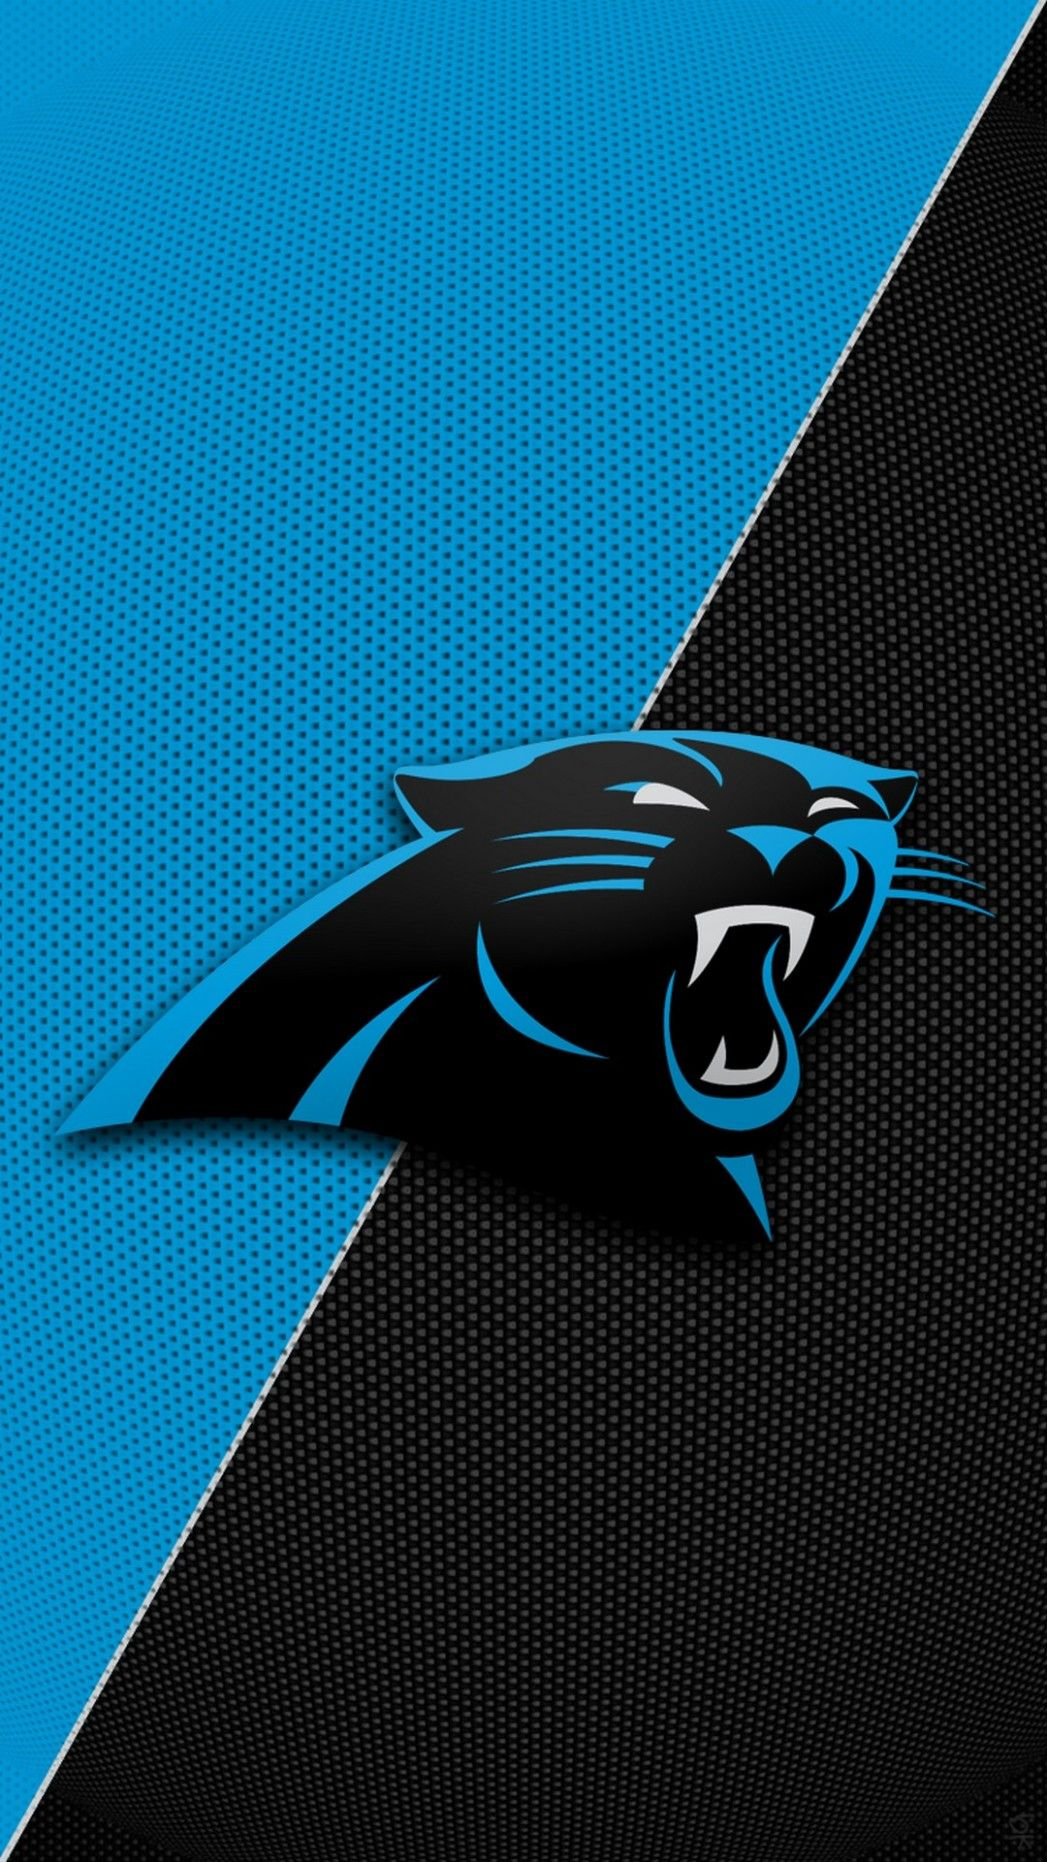 Pin by Lindsey Yopp on Carolina panthers wallpaper (With ...